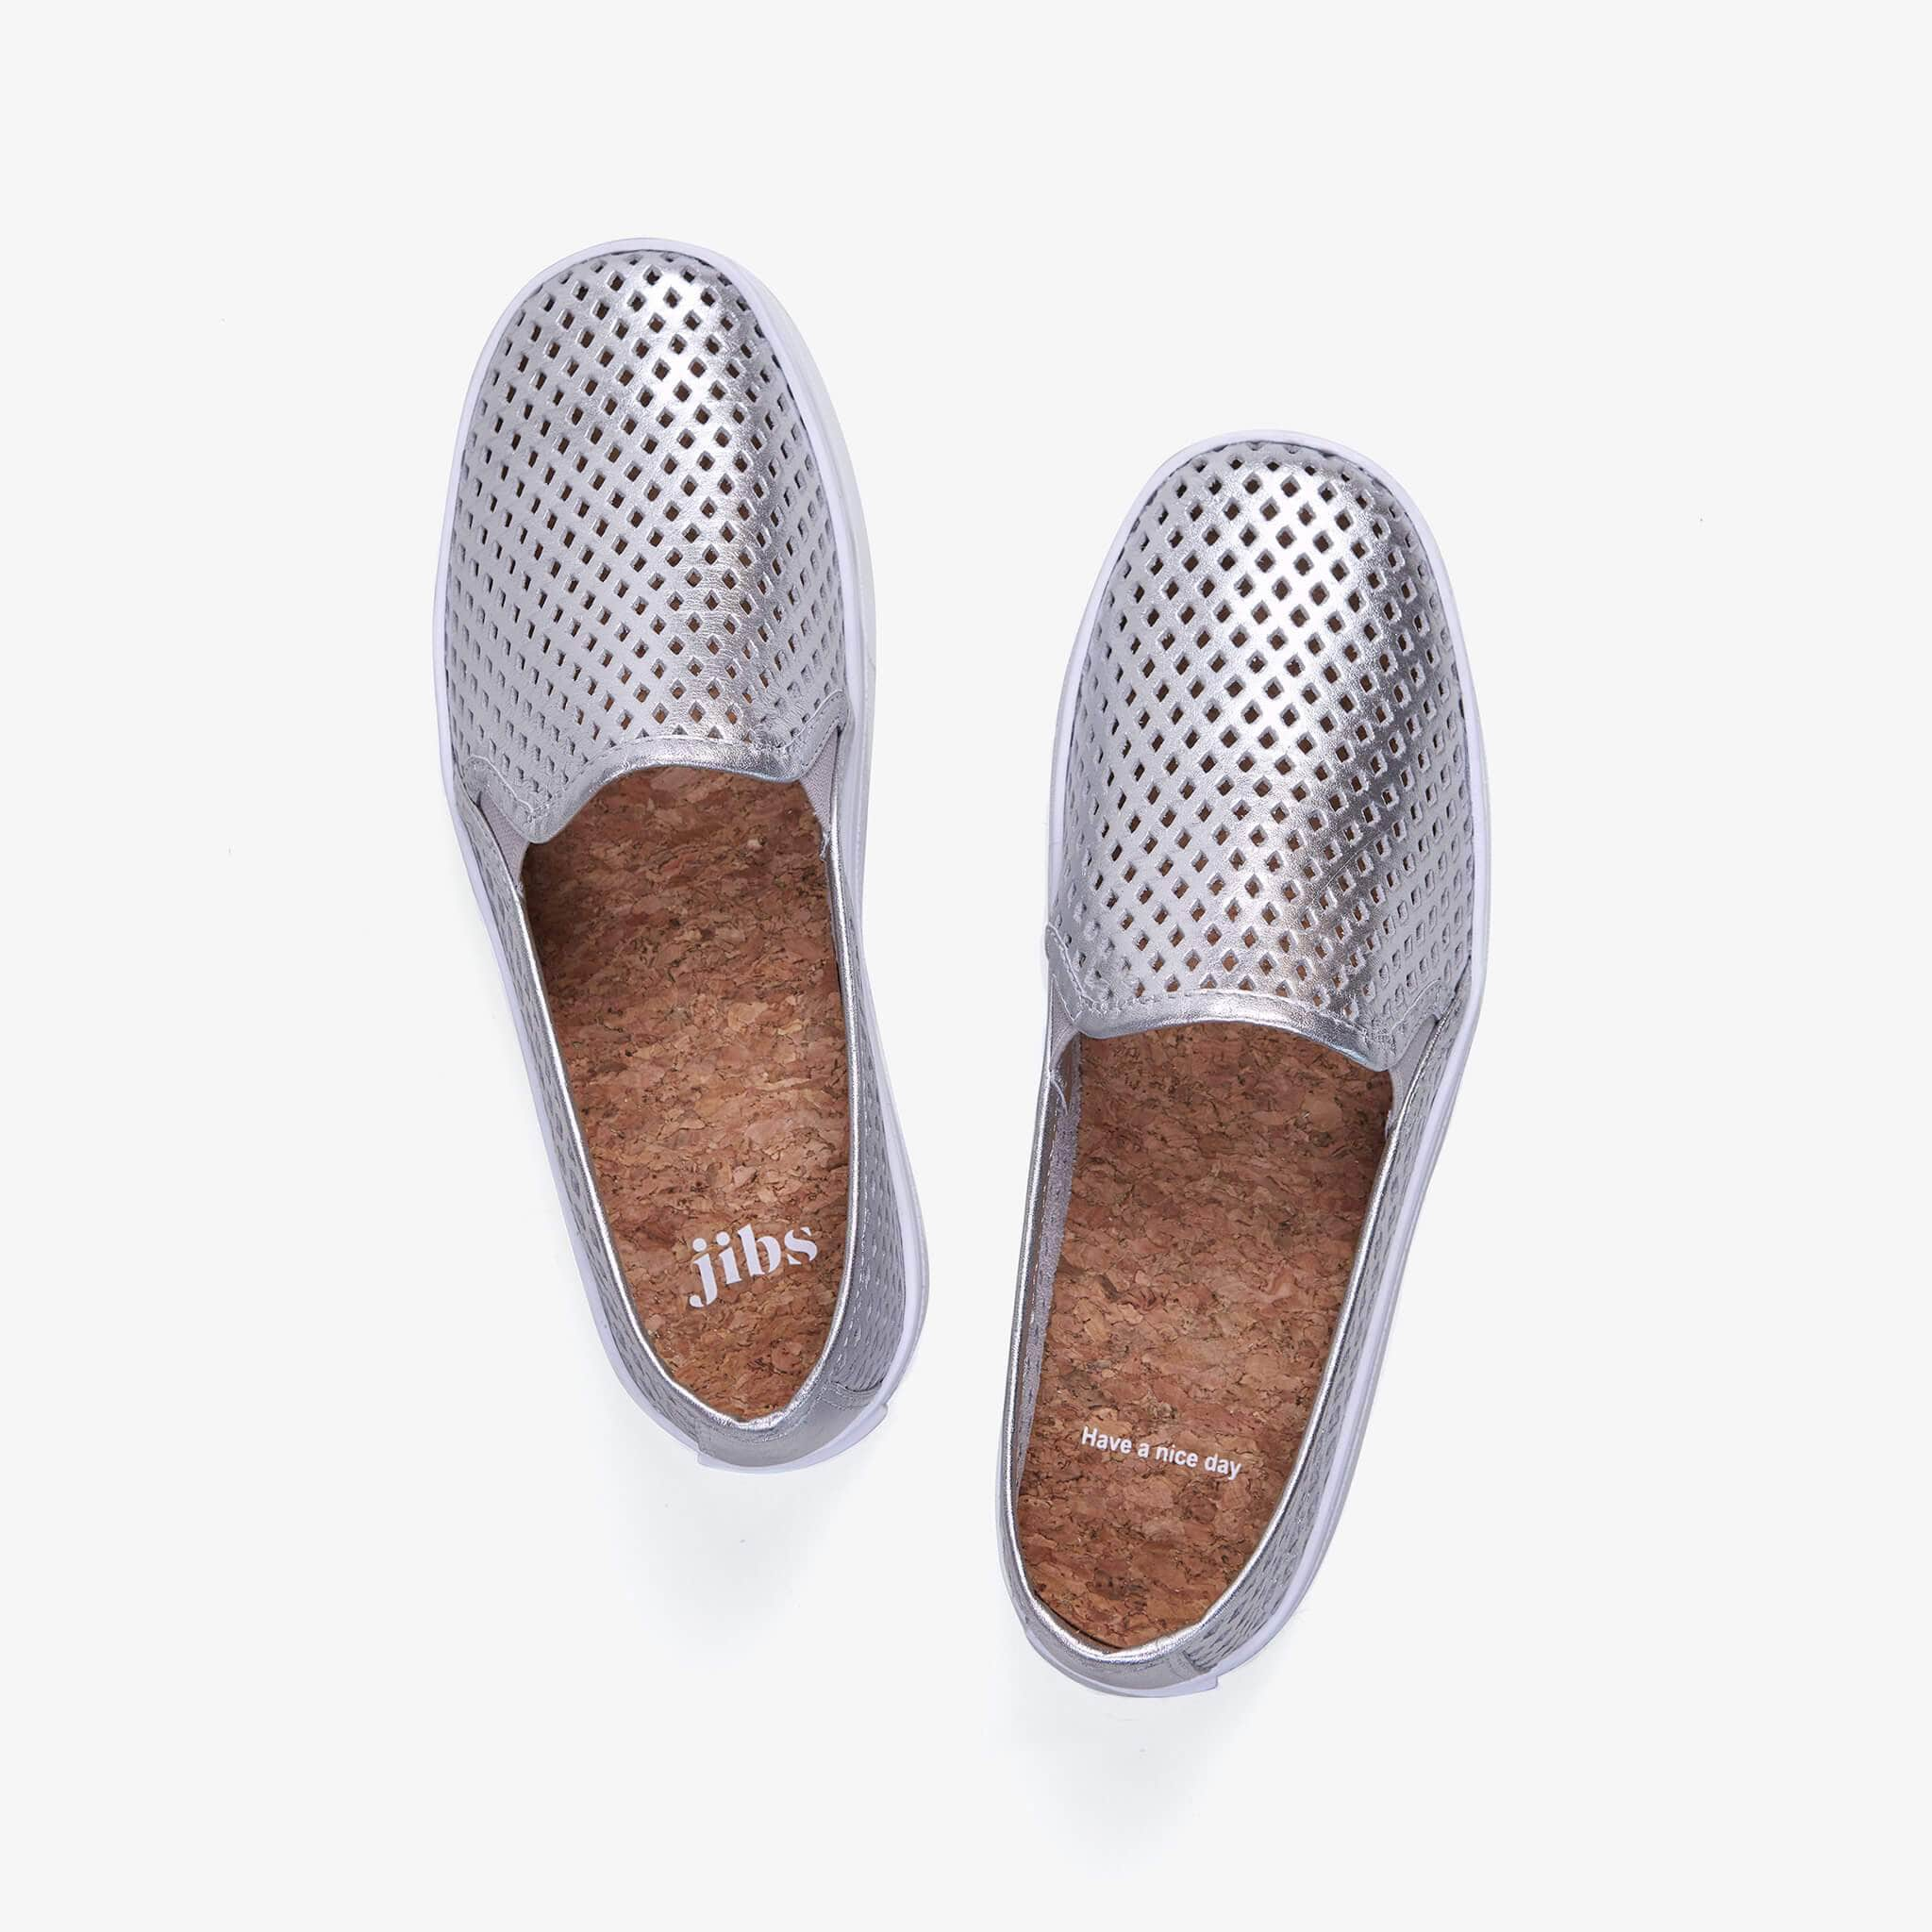 Jibs Classic Silver Slip On Sneaker-Shoe Side